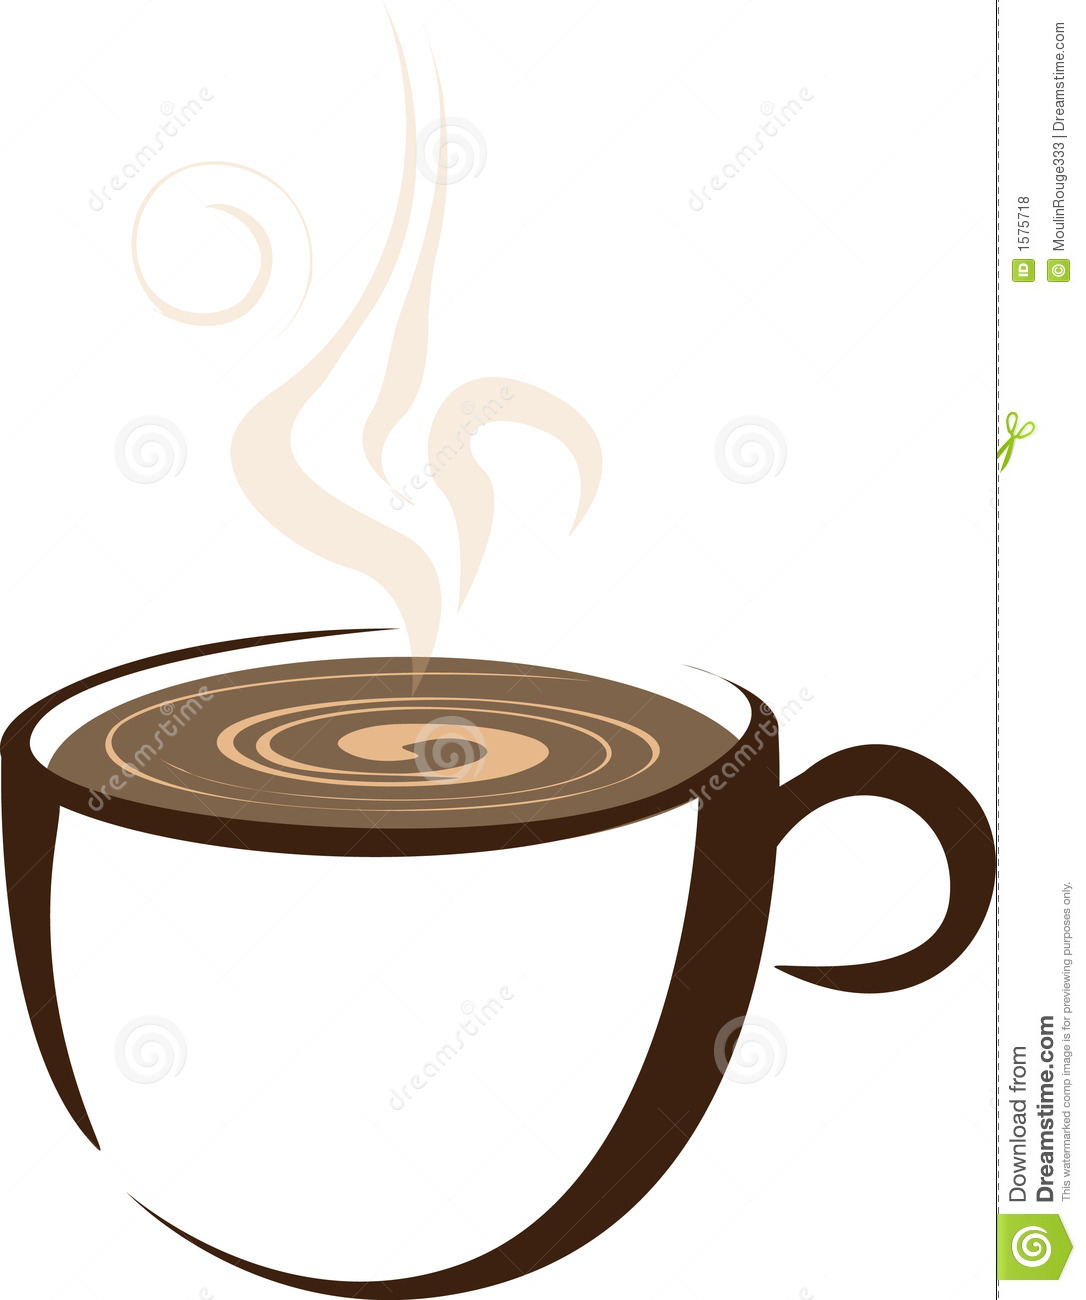 hight resolution of cup of coffee